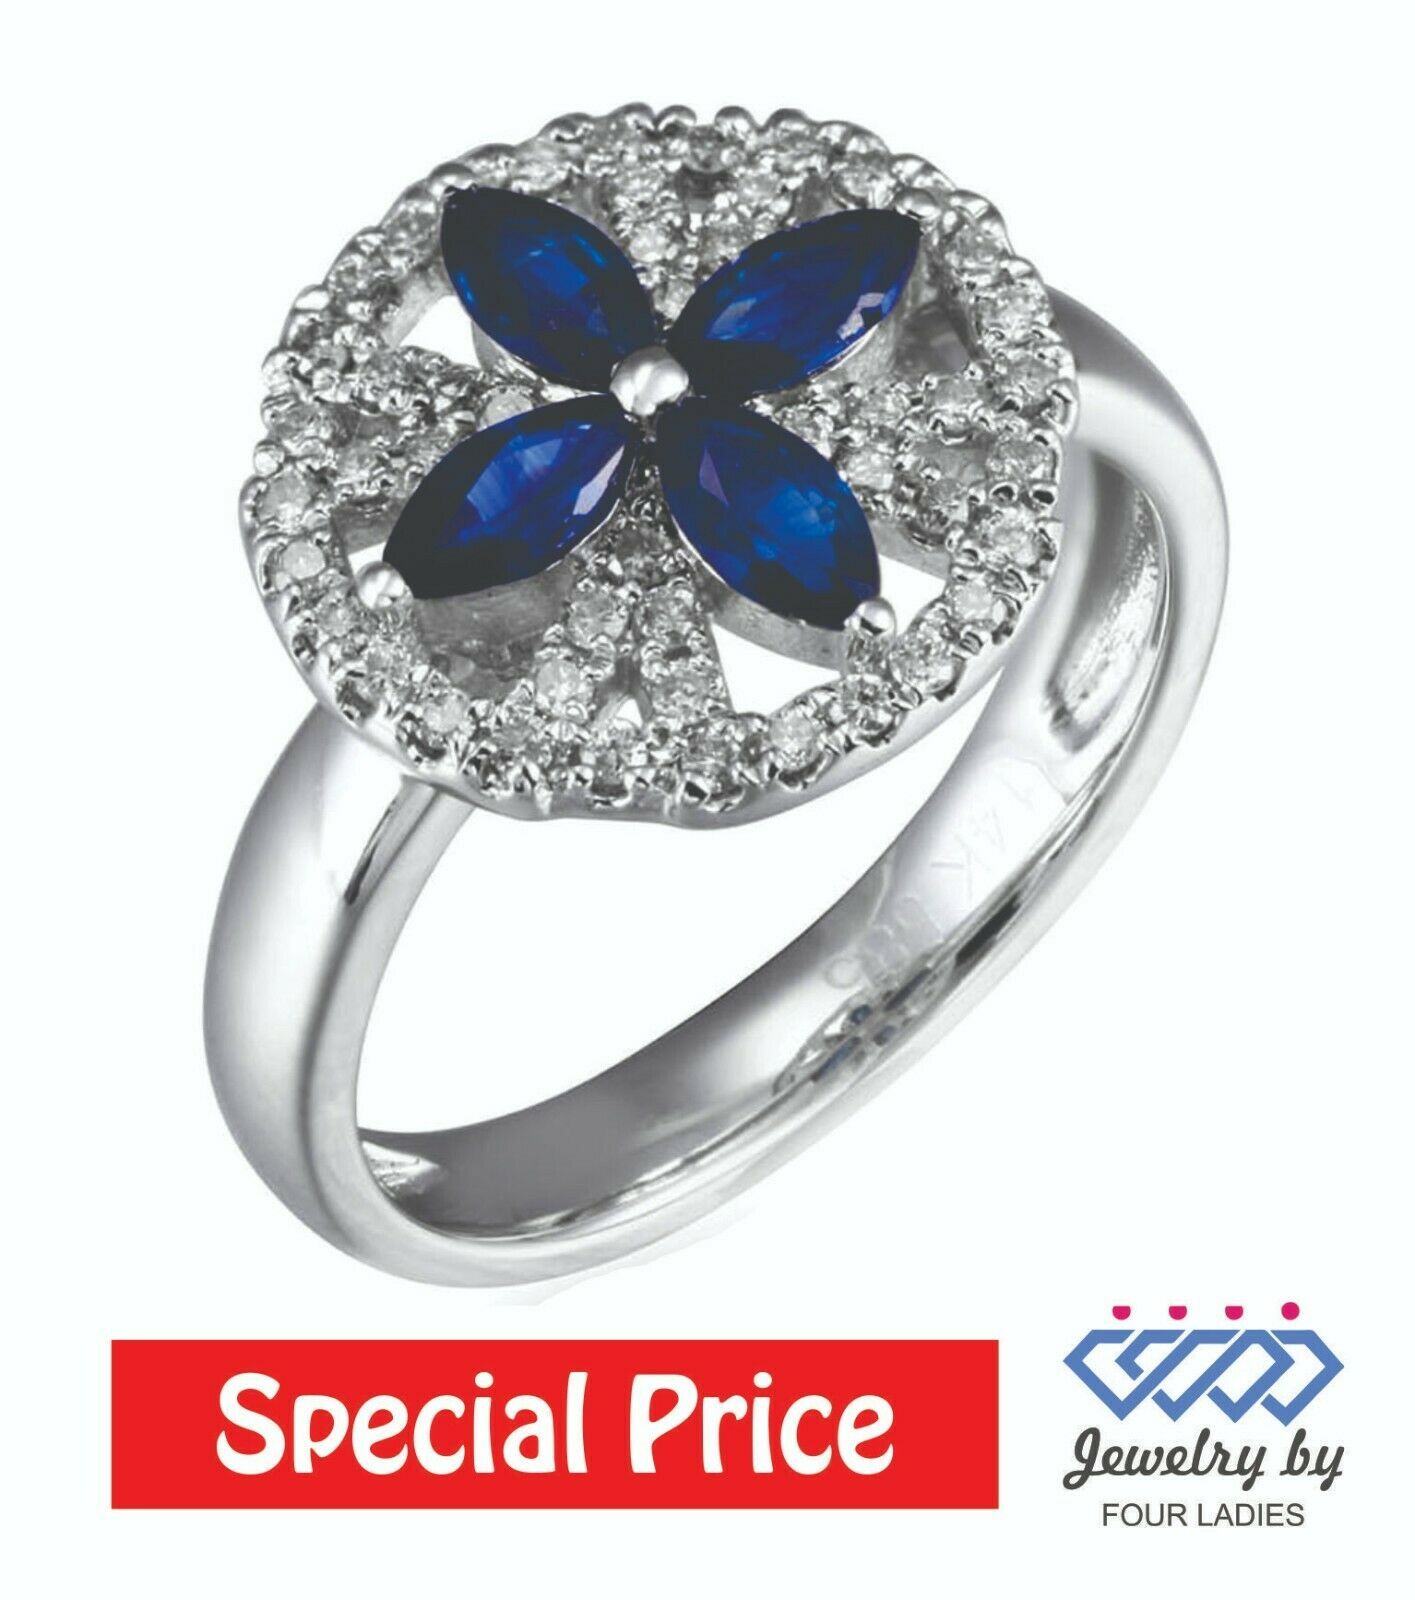 Primary image for Solid 14K White Gold 0.27CT Natural Blue Sapphire Flower Diamond Ring Jewelry